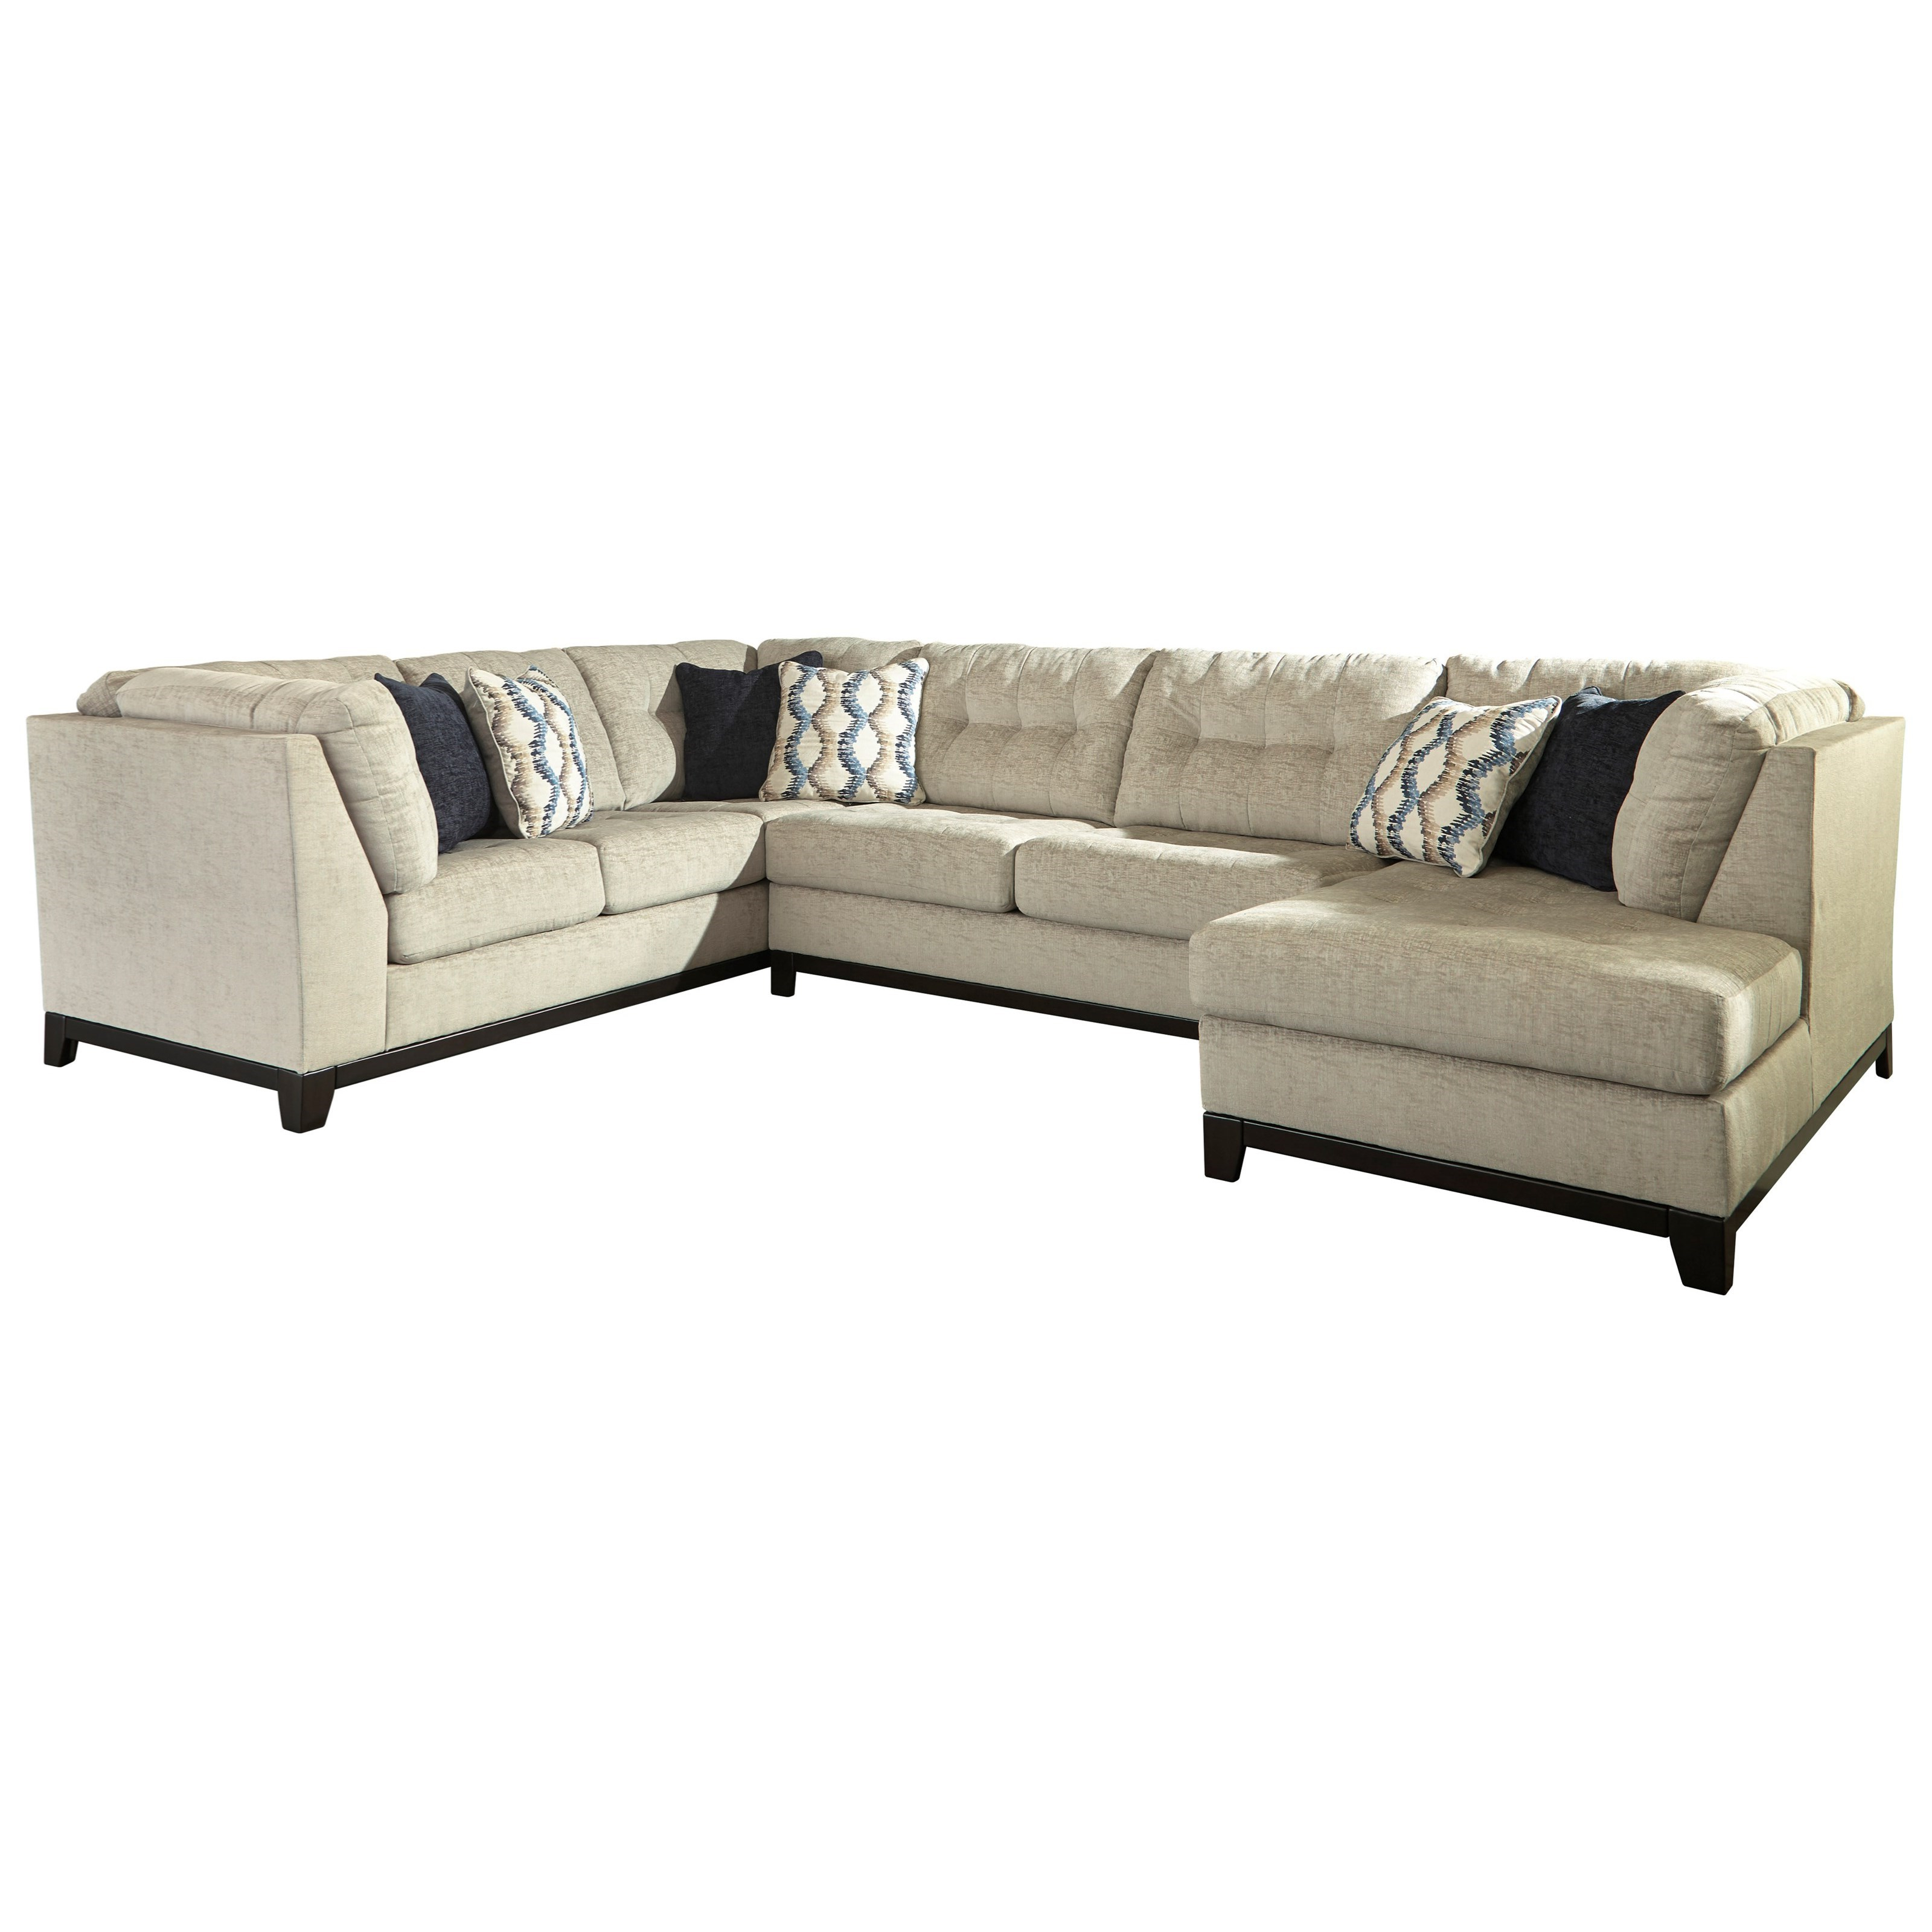 Benchcraft Beckendorf 3 Piece Sectional With Chaise (View 6 of 20)